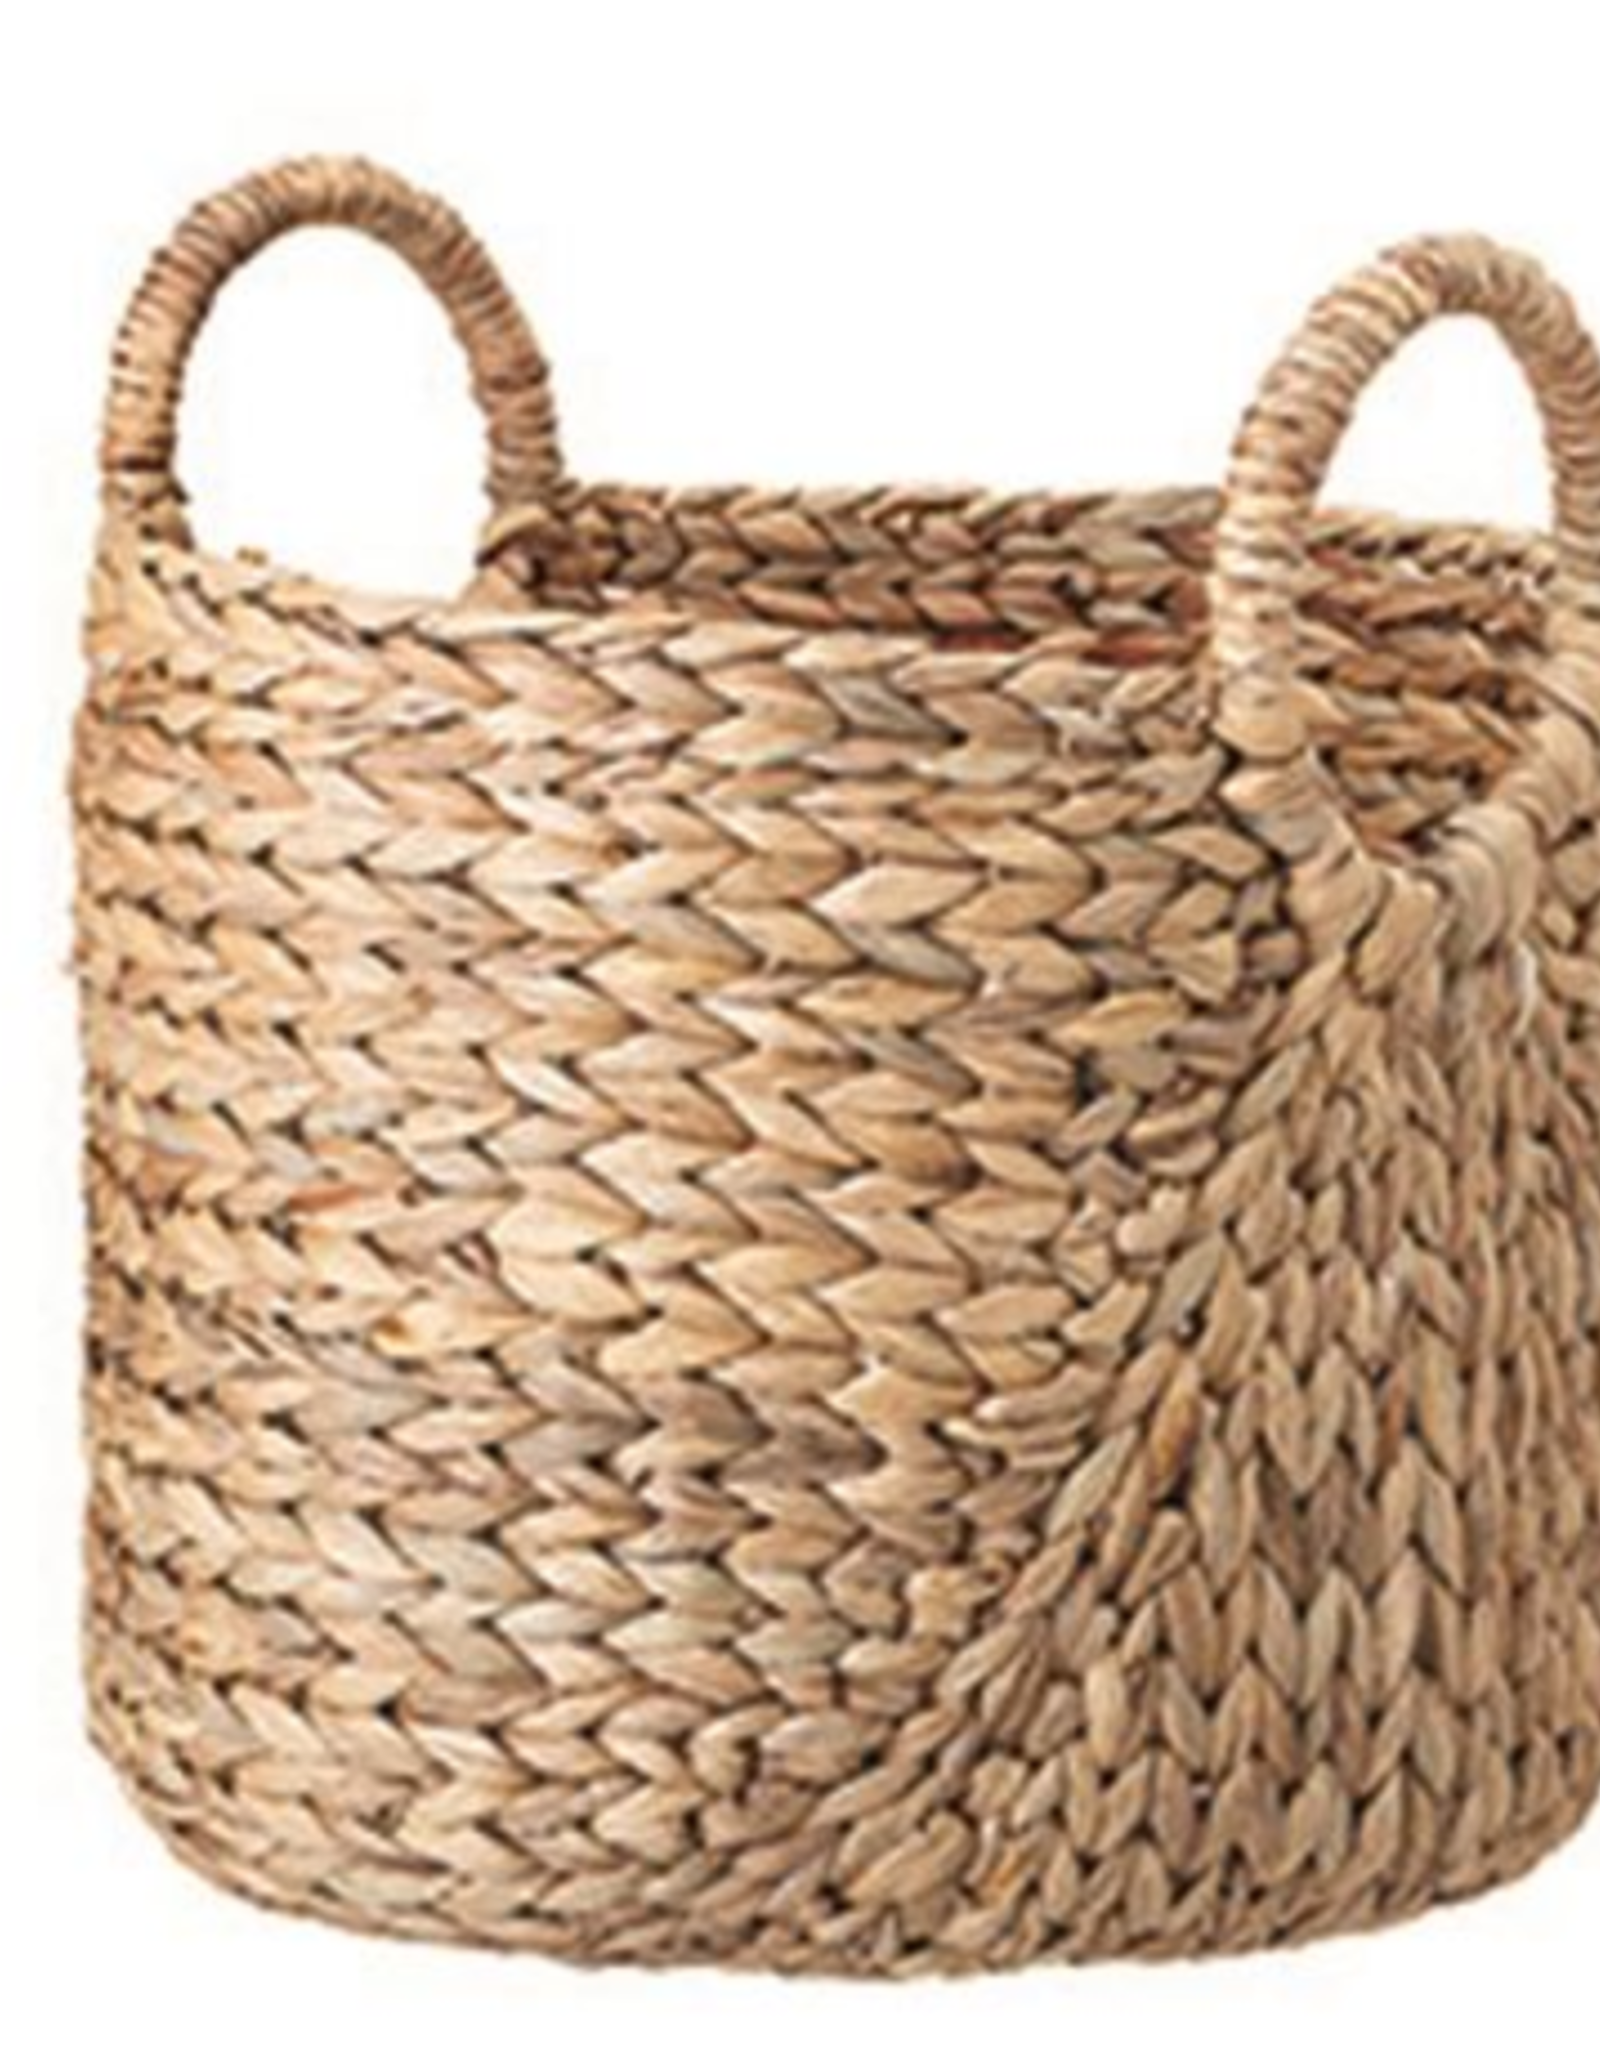 BASKET SEAGRASS WITH HANDLES